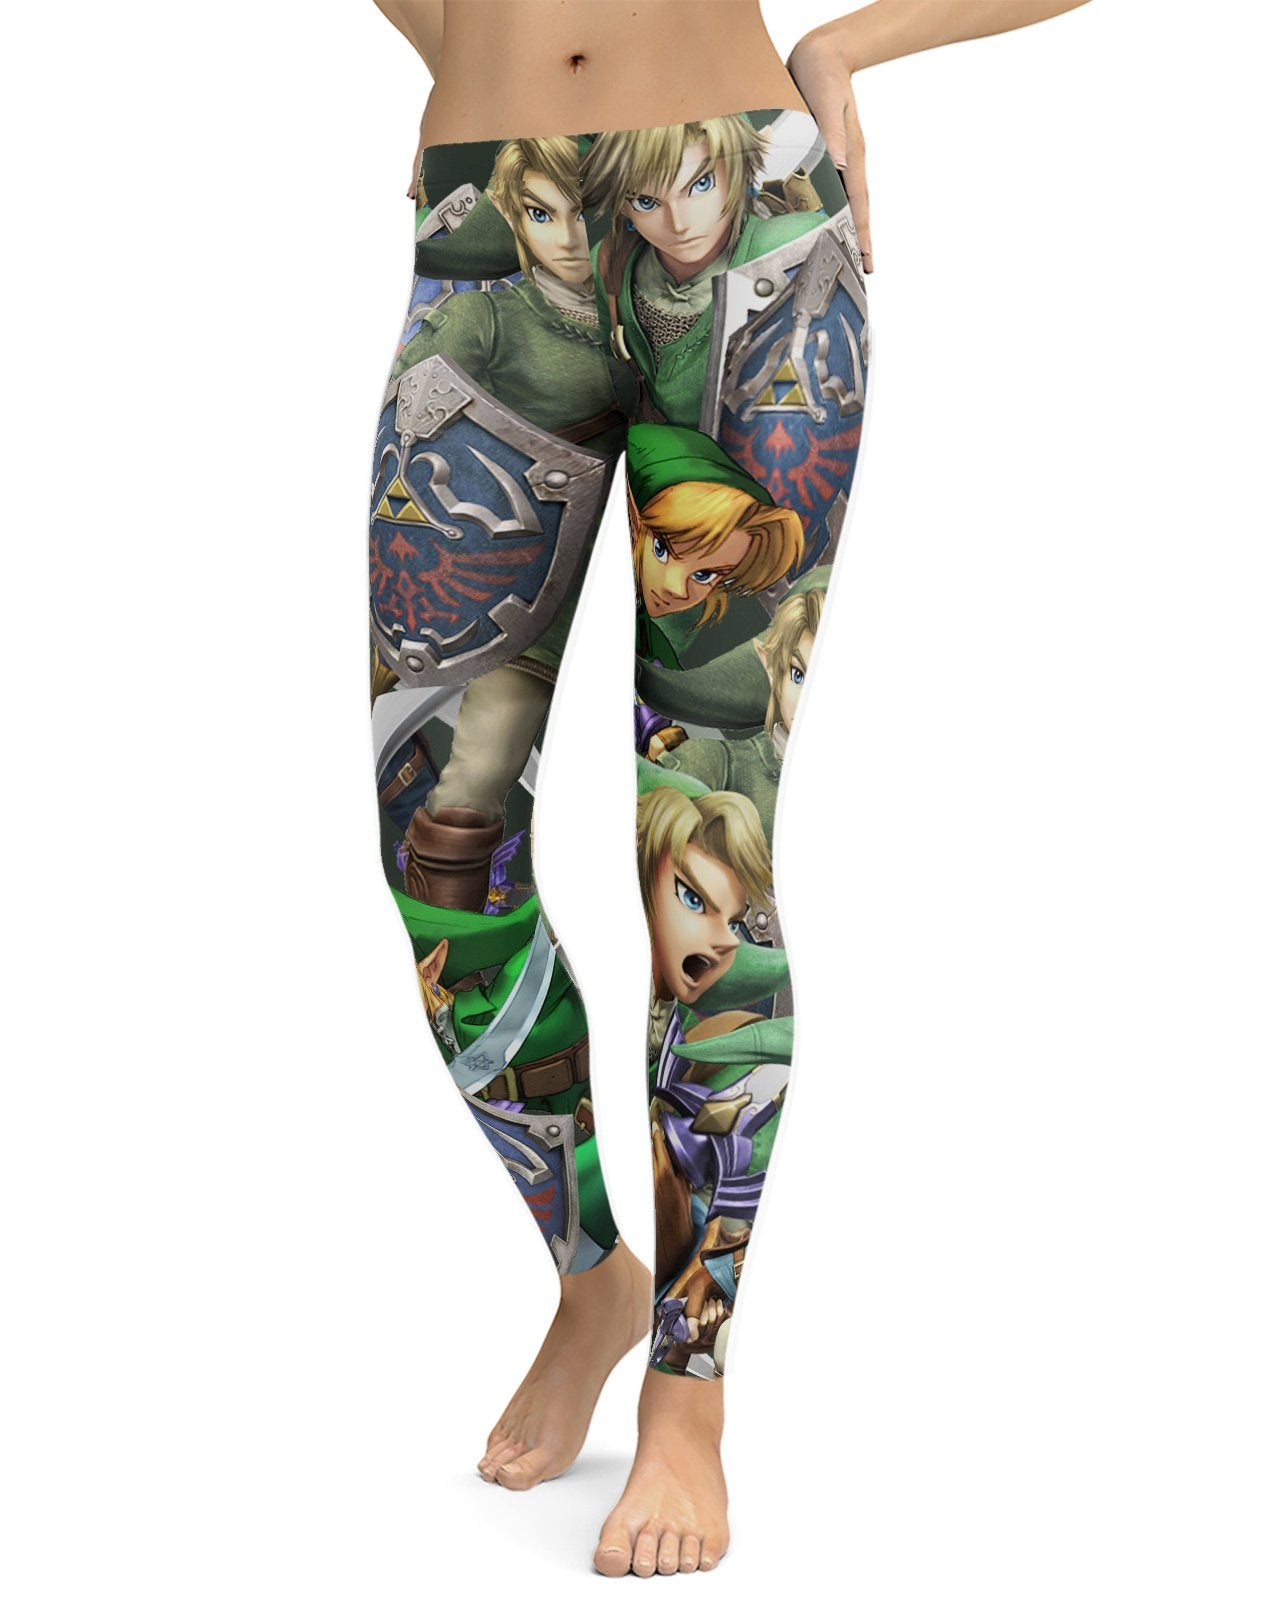 Link Super Smash Bros Leggings